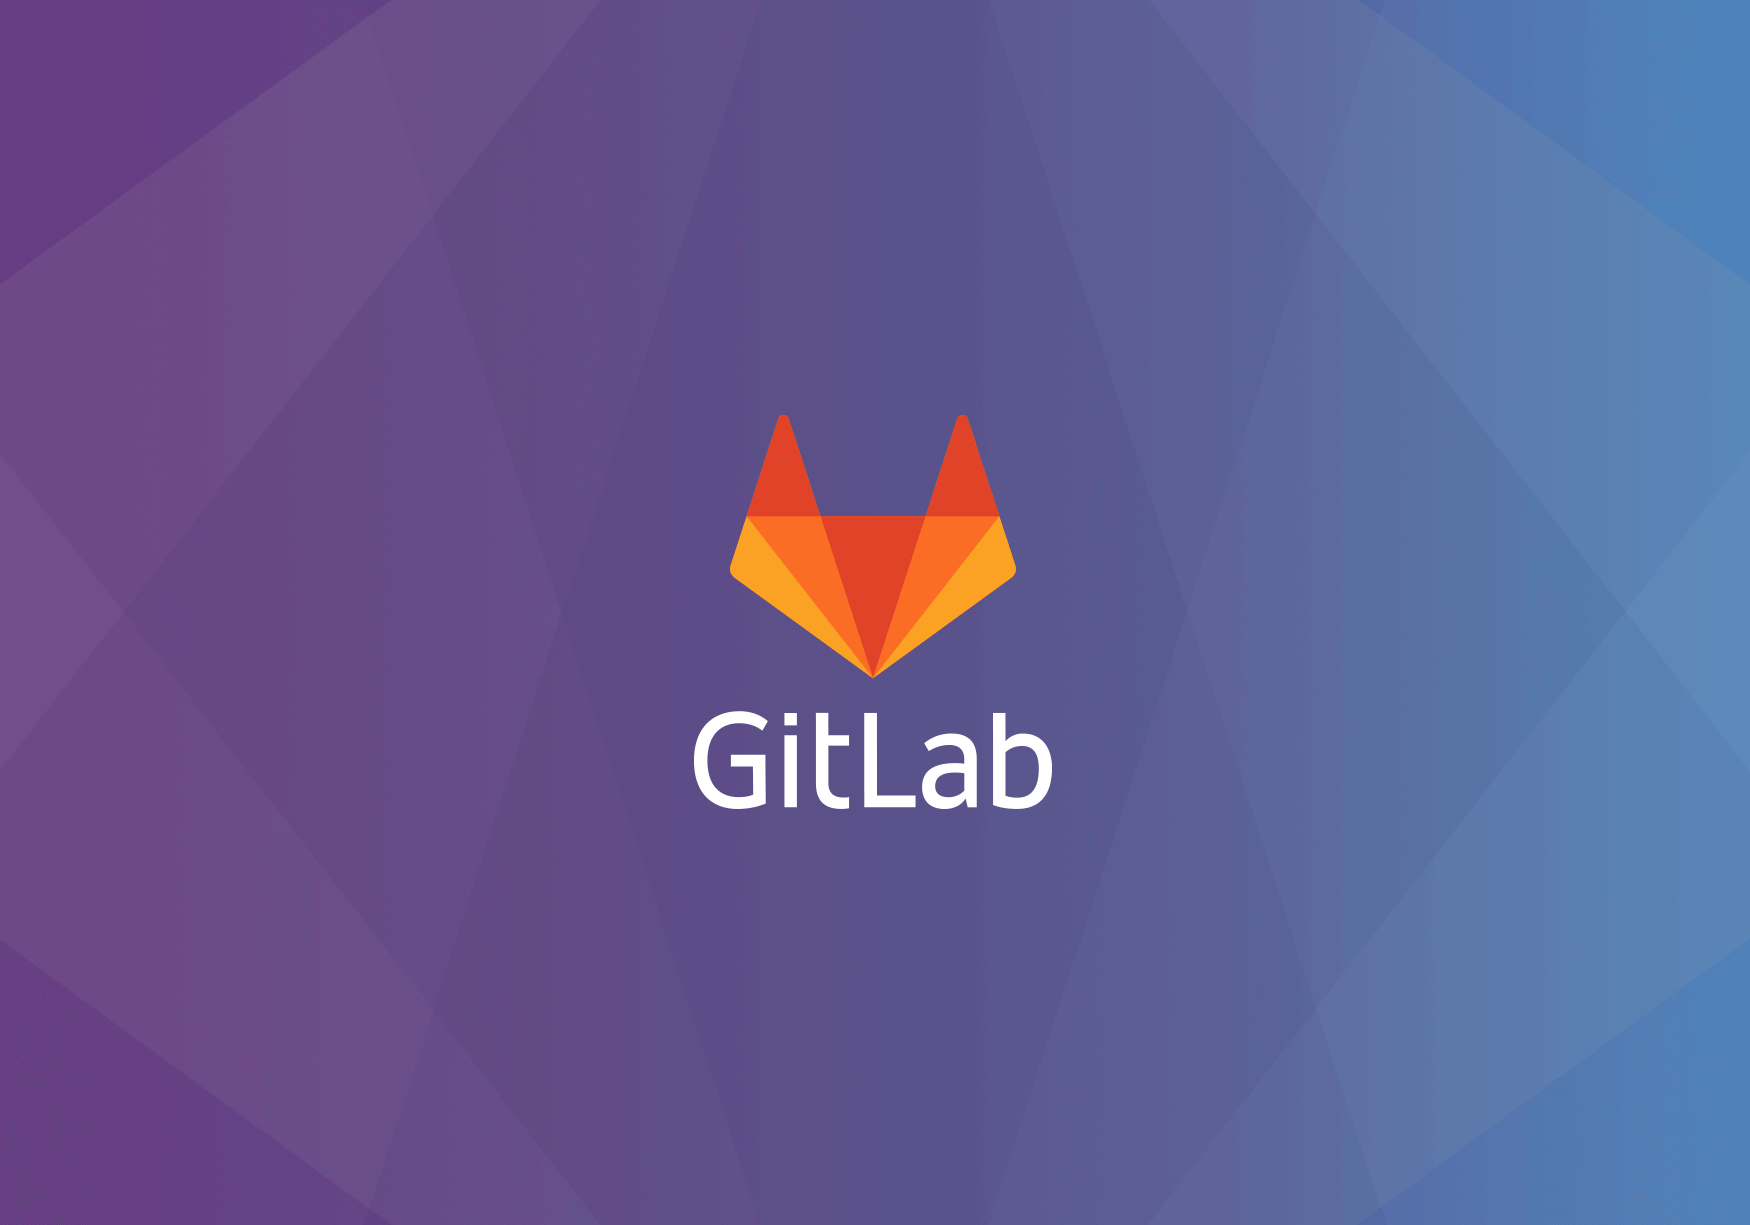 Triggering a build Pipeline in GitLab from spinnaker